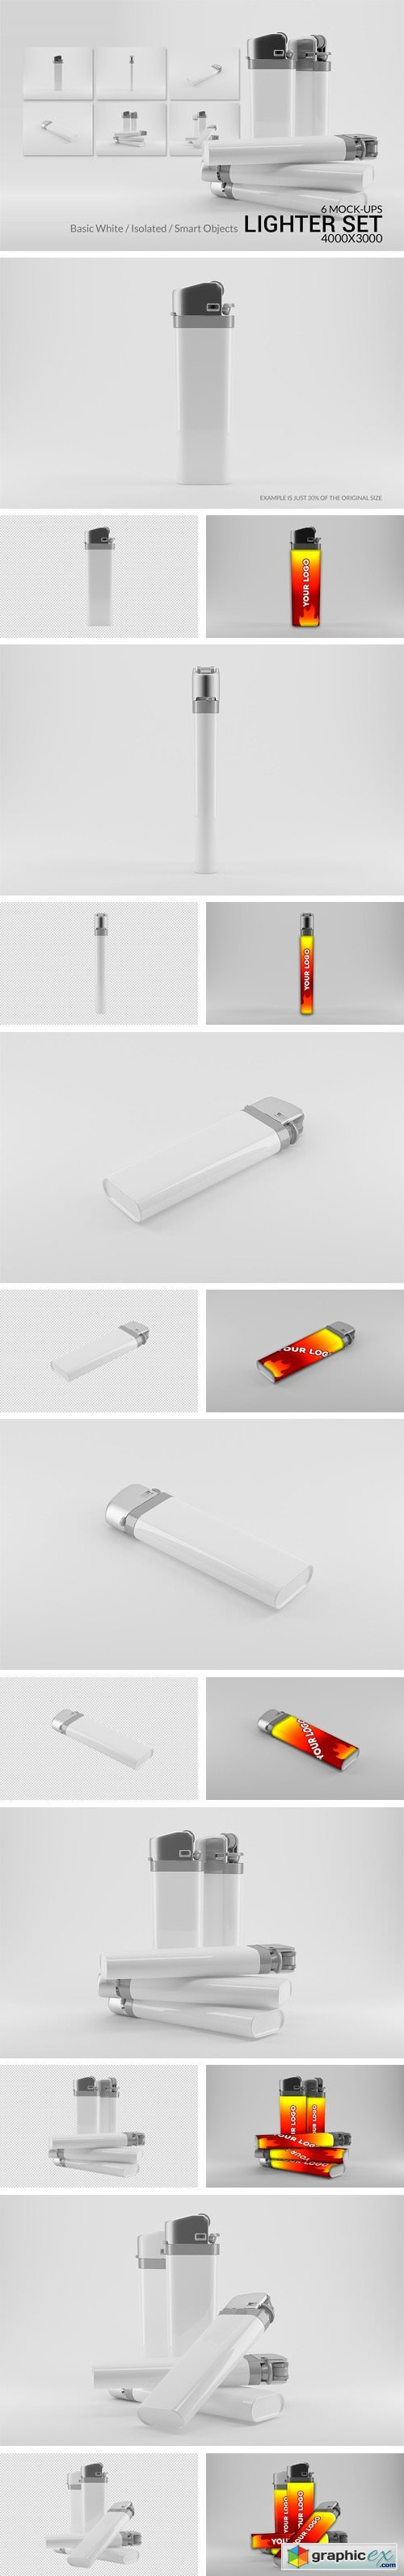 The Lighter Mock-Ups